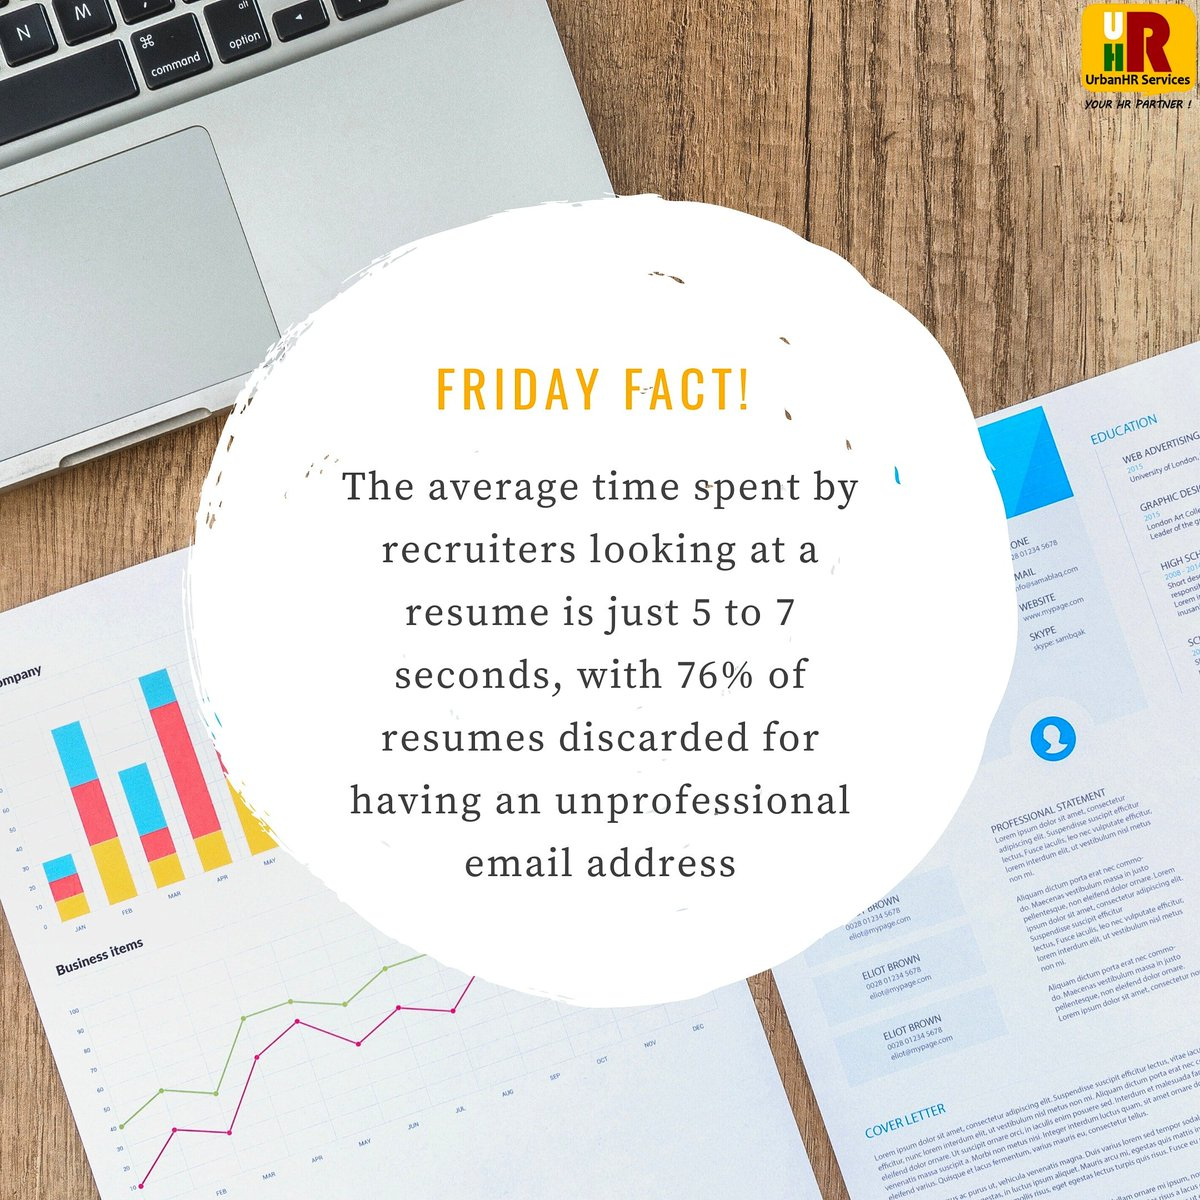 Resumes are your First impression.  #friday #facts #UrbanHR #service #humanresourcesmanagement #instaday #delhi #postoftheday #resumes #employees #hrconsulting #instagood #instalife #follow #like #share